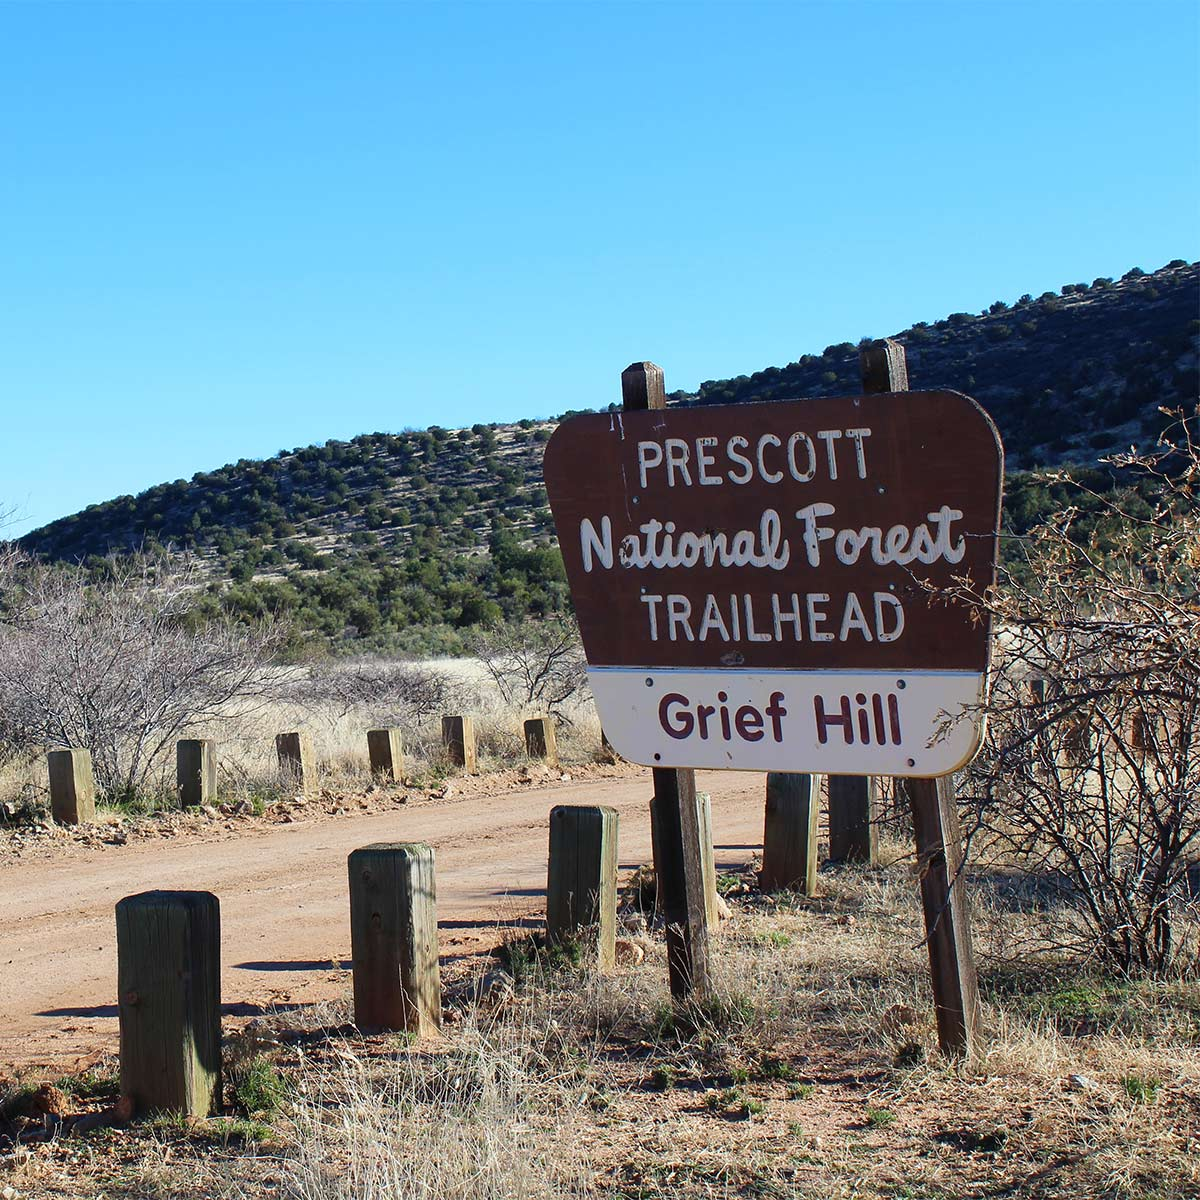 Grief Hill Trailhead